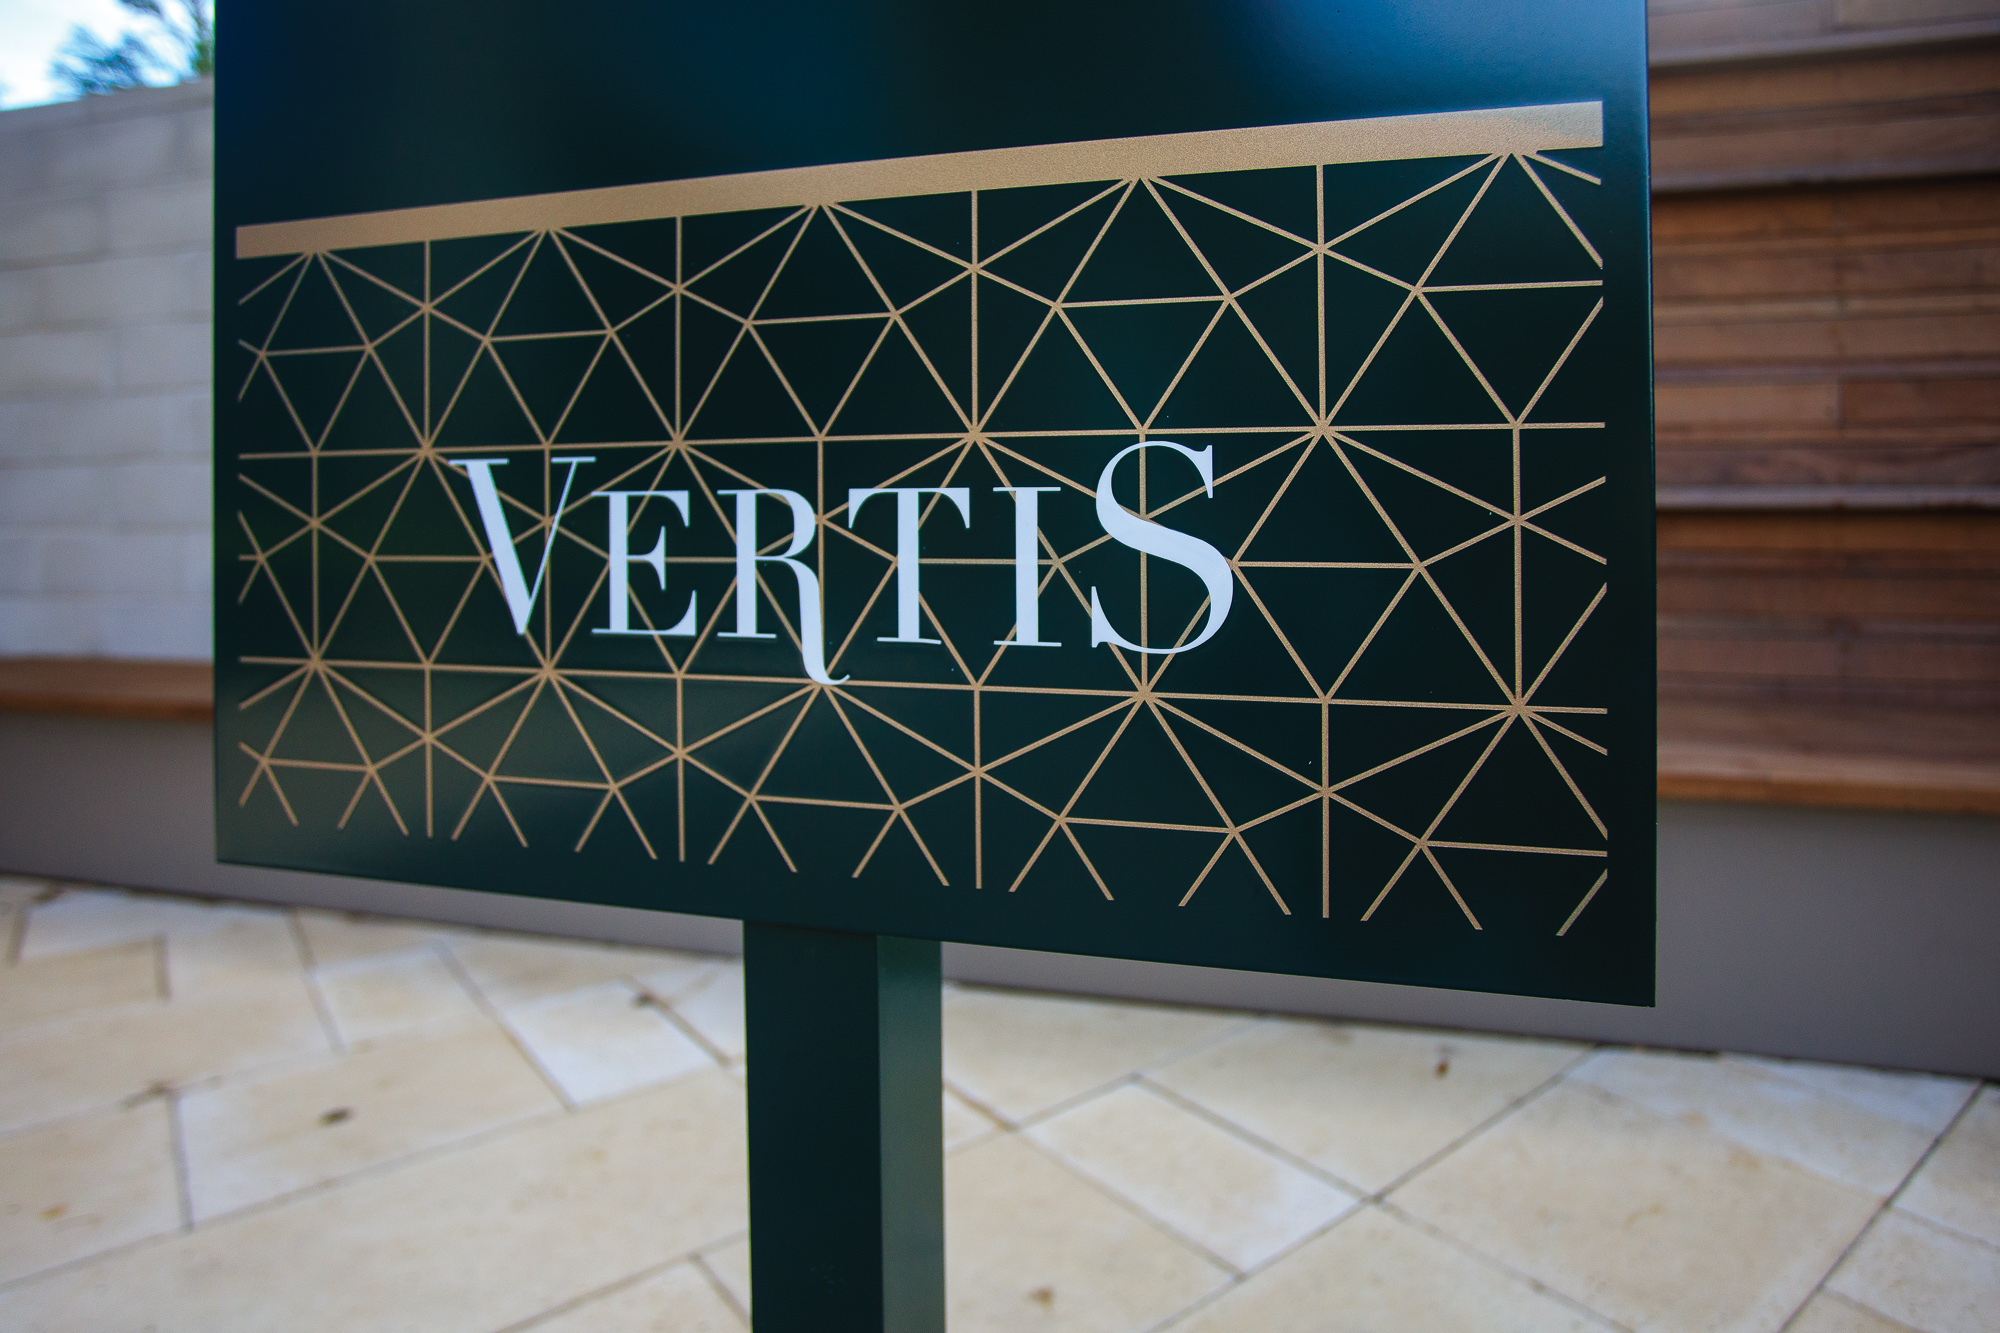 Vertis-Green-Hills_brand-identity-signage-detail_MG_5204_small 2000 px.jpg